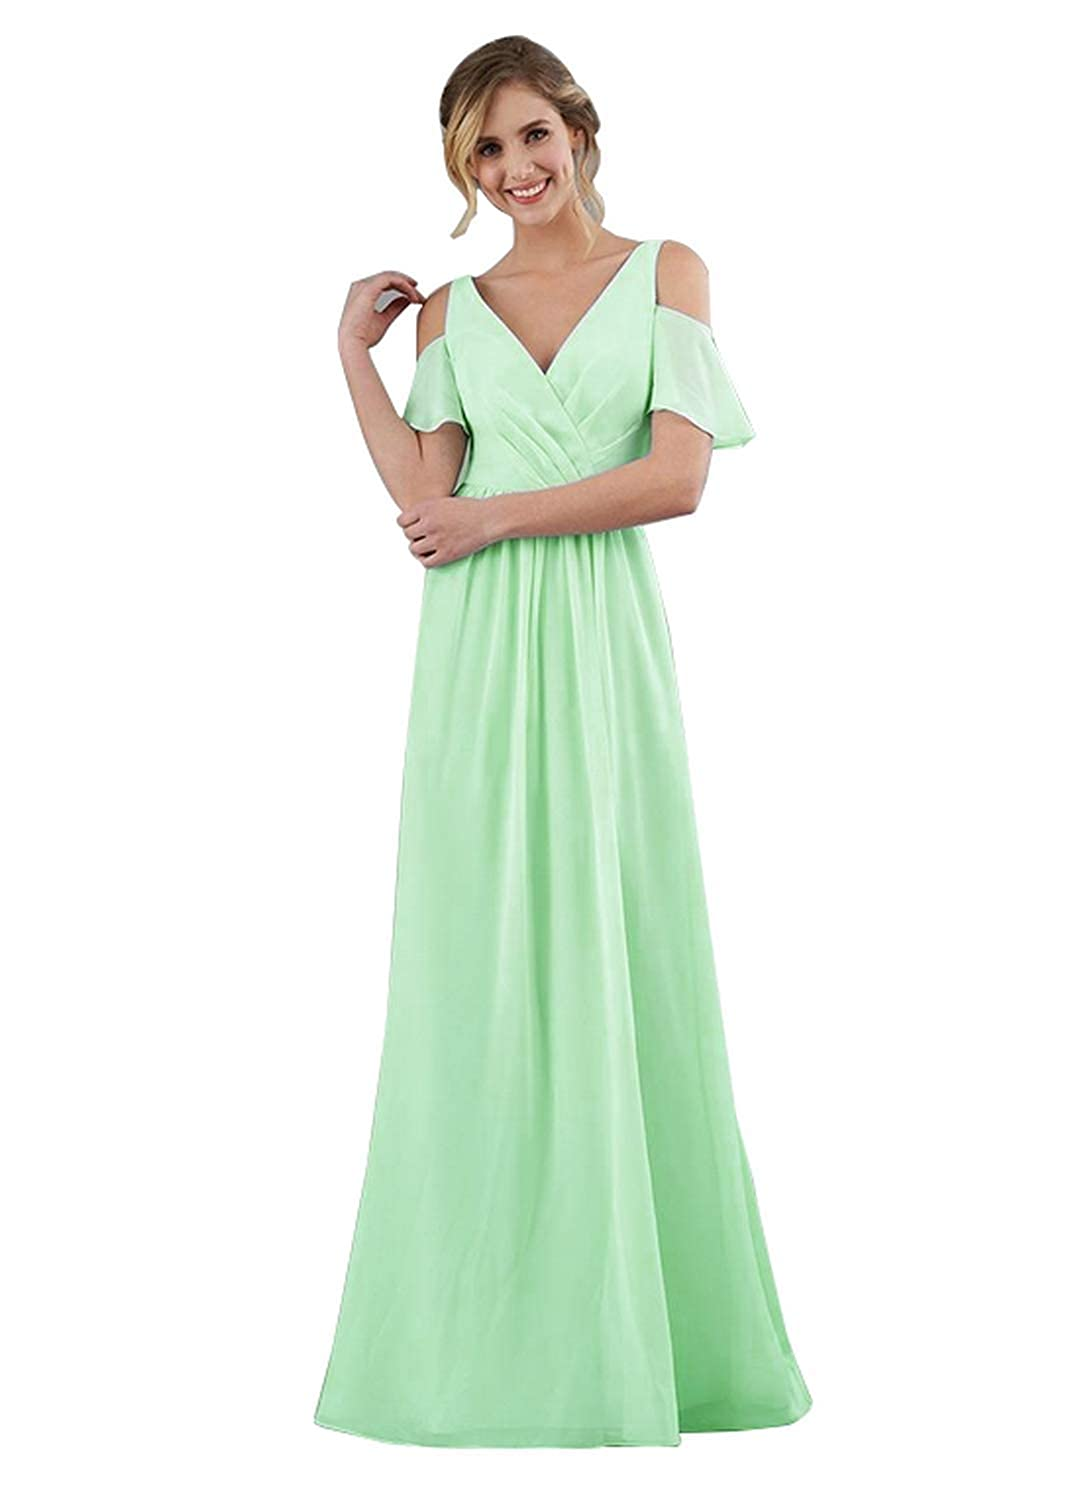 KKarine Womens A-Line Ruched Chiffon Flutter Sleeves Double V Neck Bridesmaid Dresses Long Formal Evening Gown